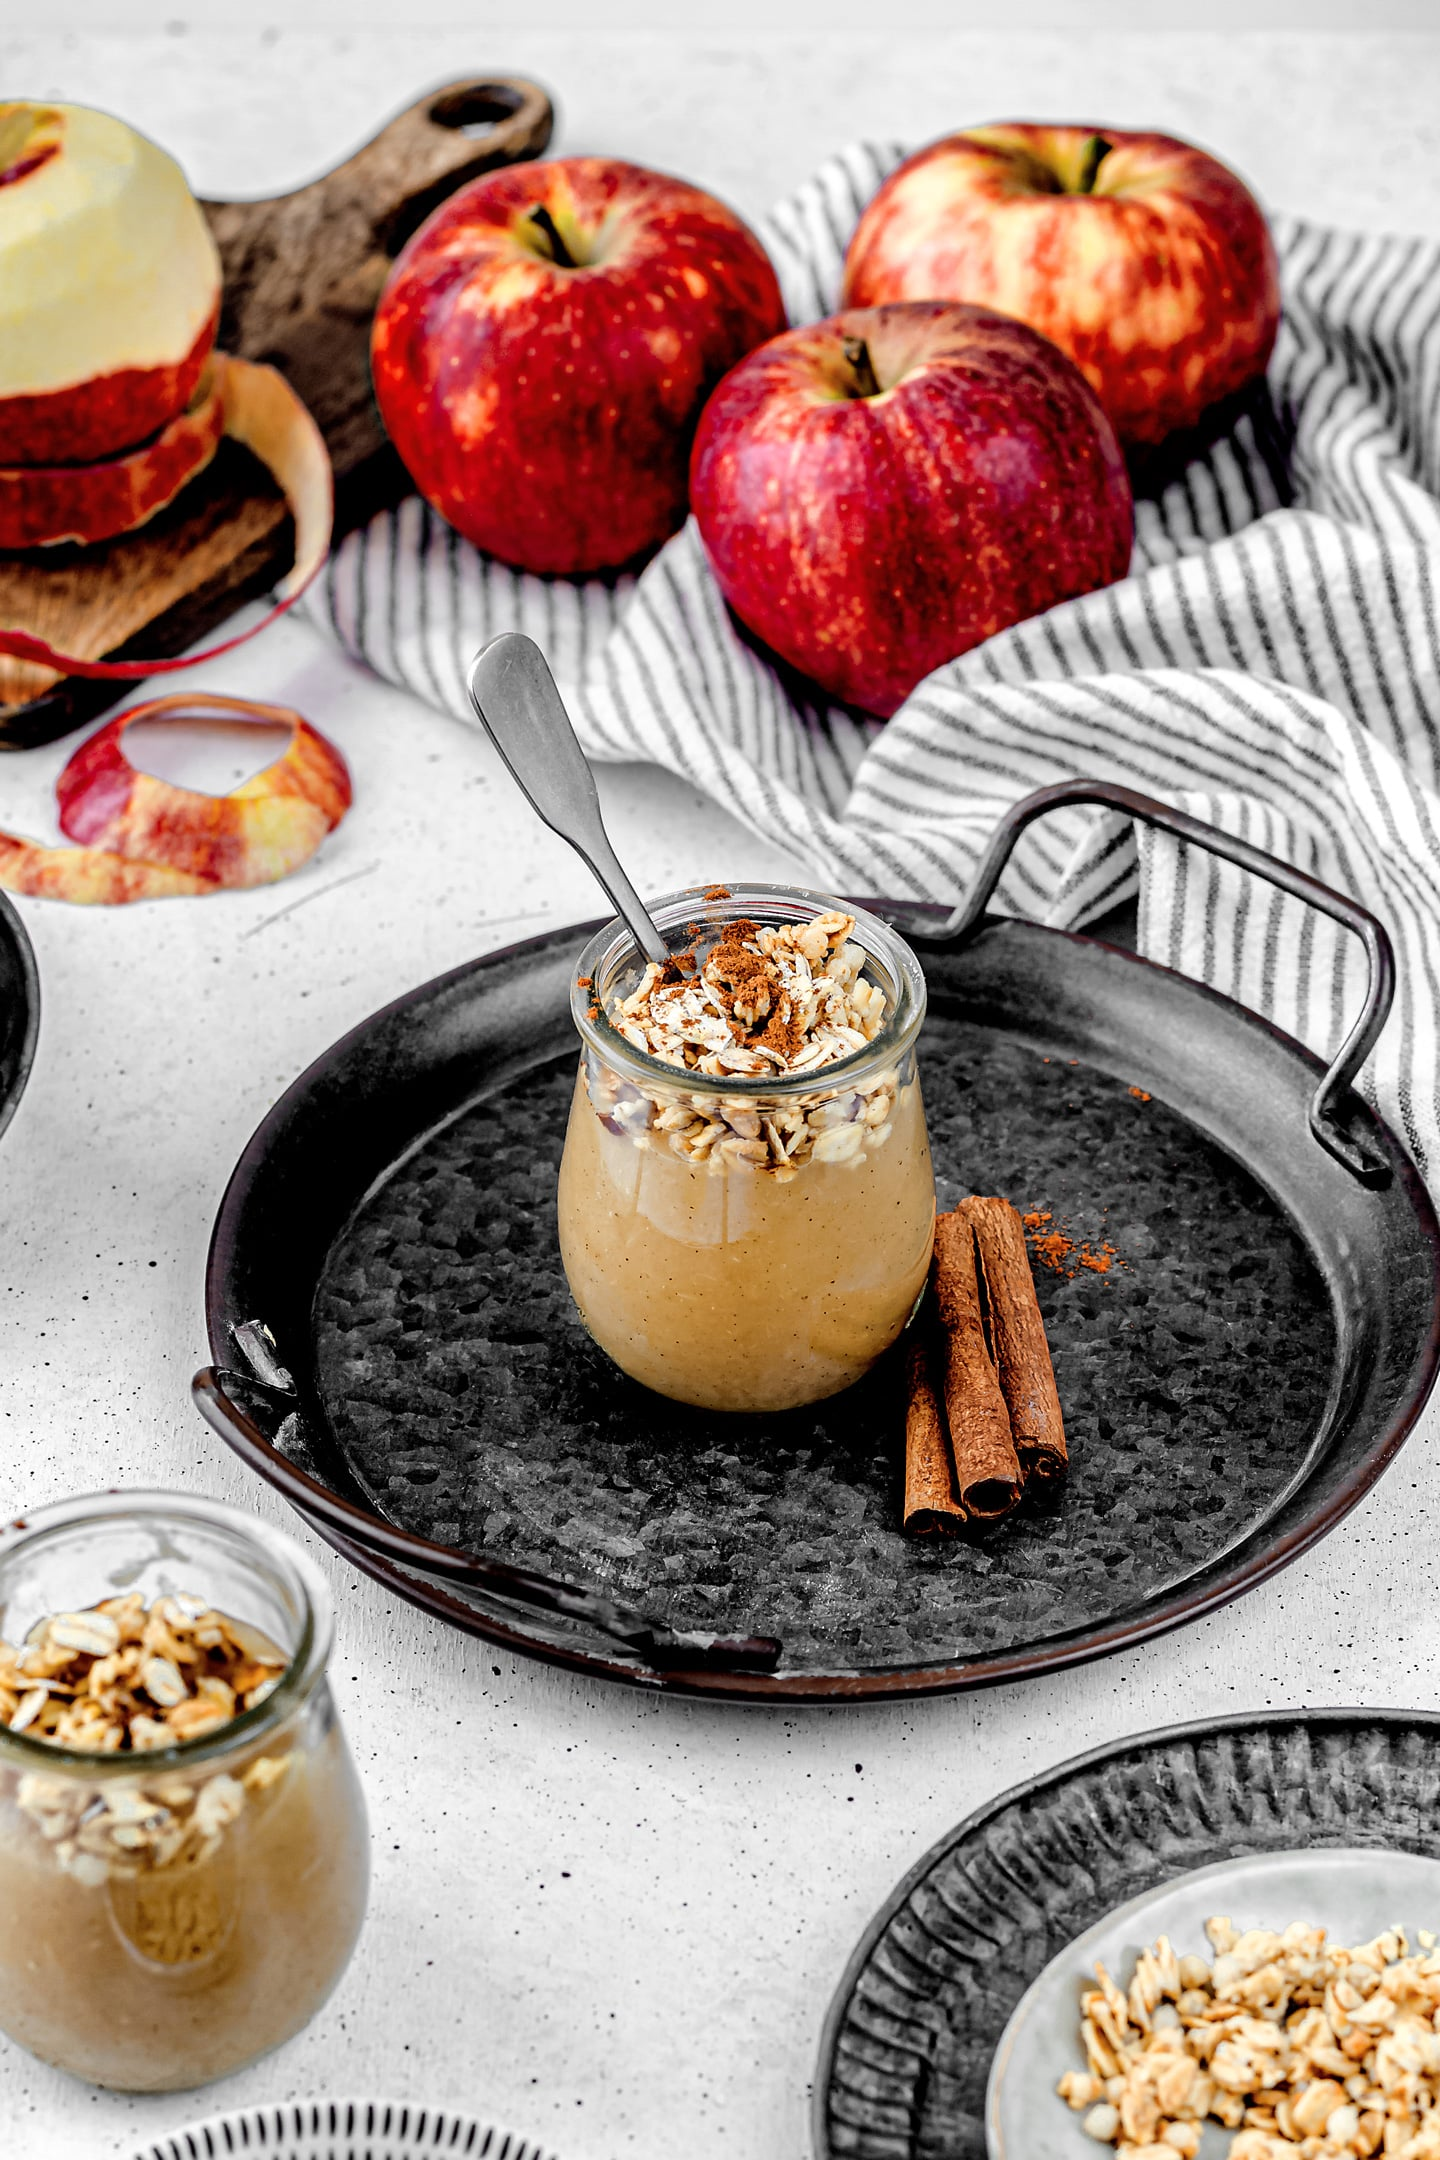 Apple compote recipe